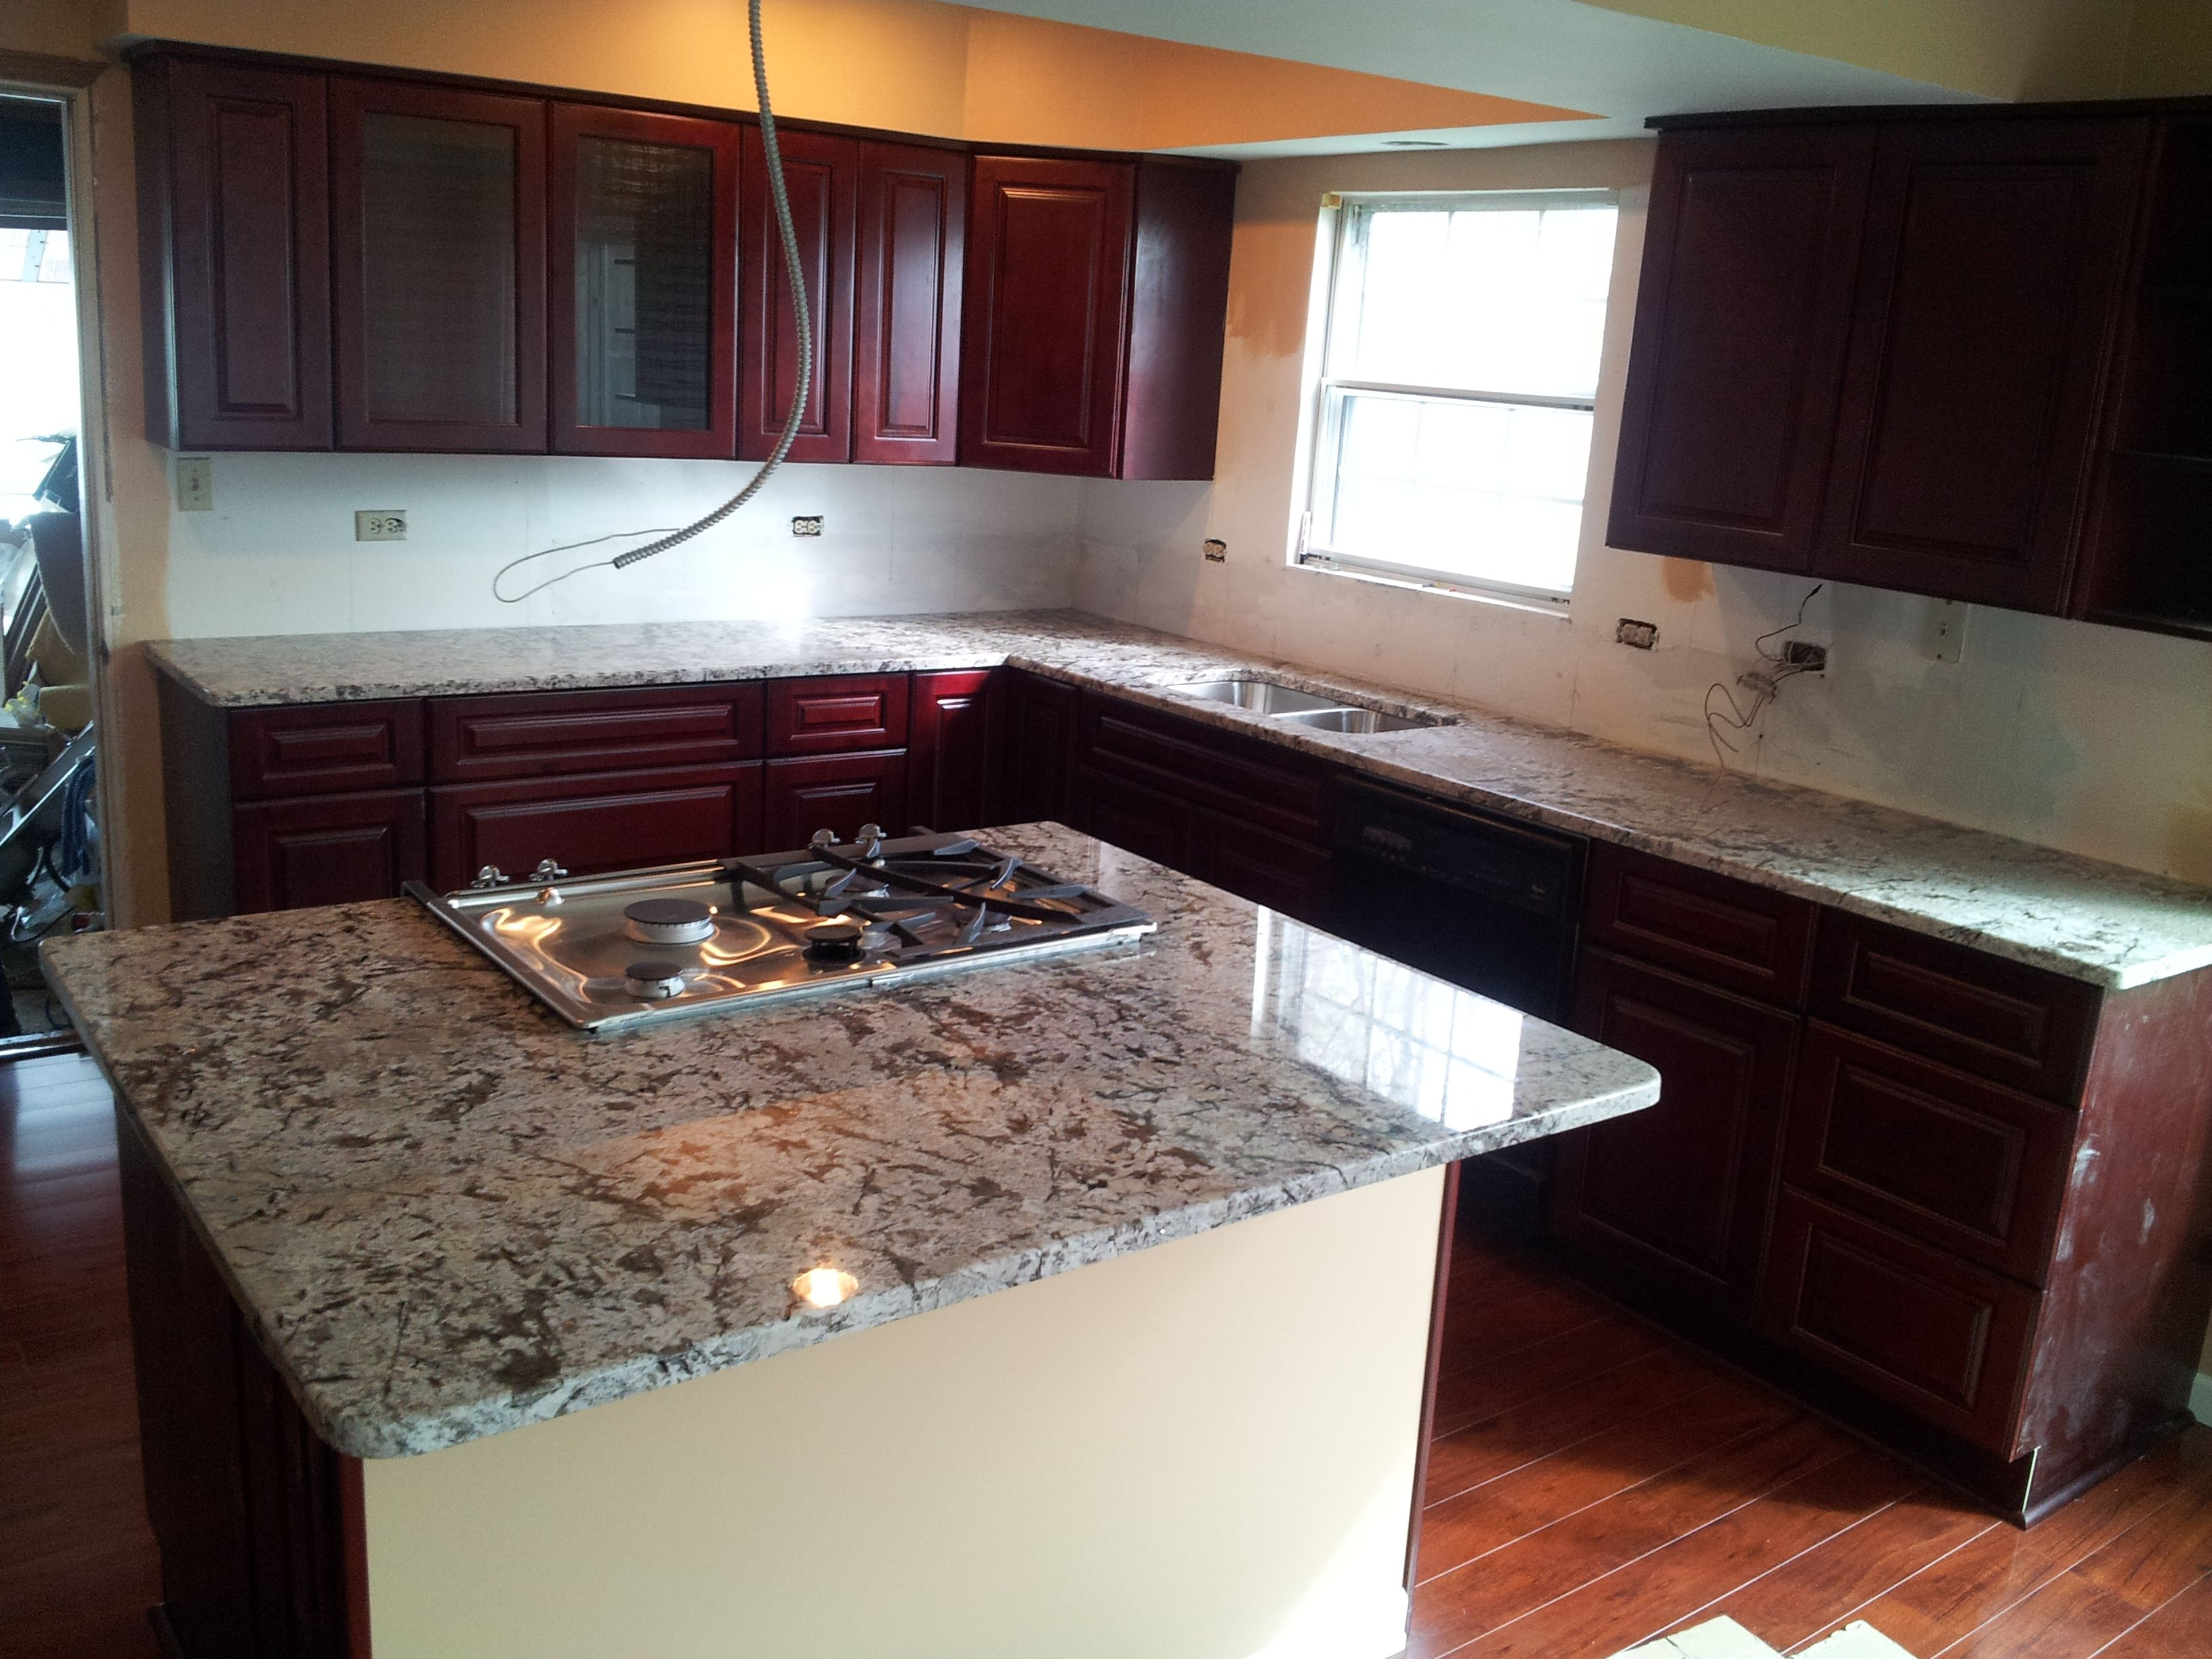 Art Granite Countertops Inc. 1020 Lunt Ave . Unit F Schaumburg IL , 60193 Tel:(847) 923-1323 Fax:84… | Granite countertops, Countertops, Bianco antico granite